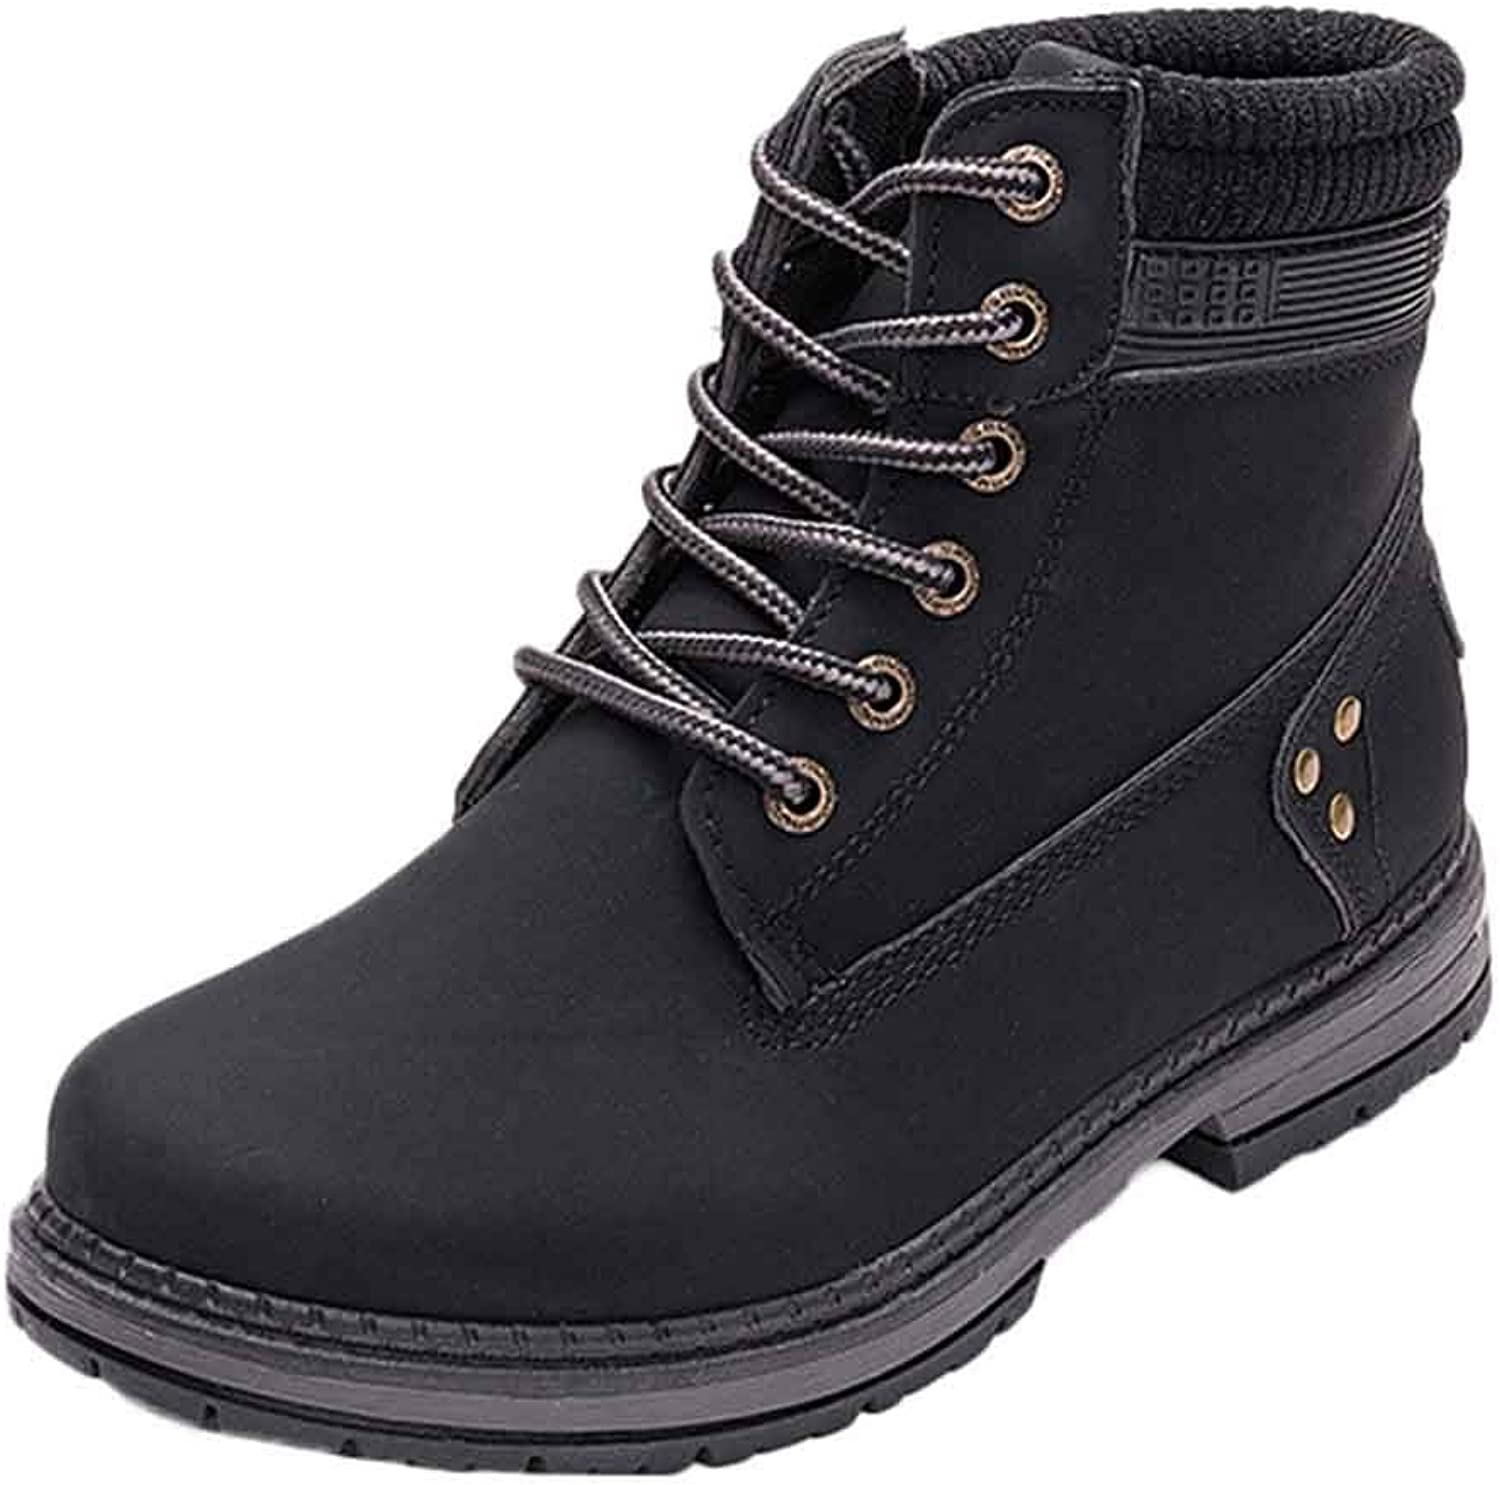 GouuoHi Womens Boots Women Solid Lace Up Fashion Basic Classic Daily Stylish Hipster Warm Casual Ankle Boots Round Toe shoes Student Snow Martin Boots